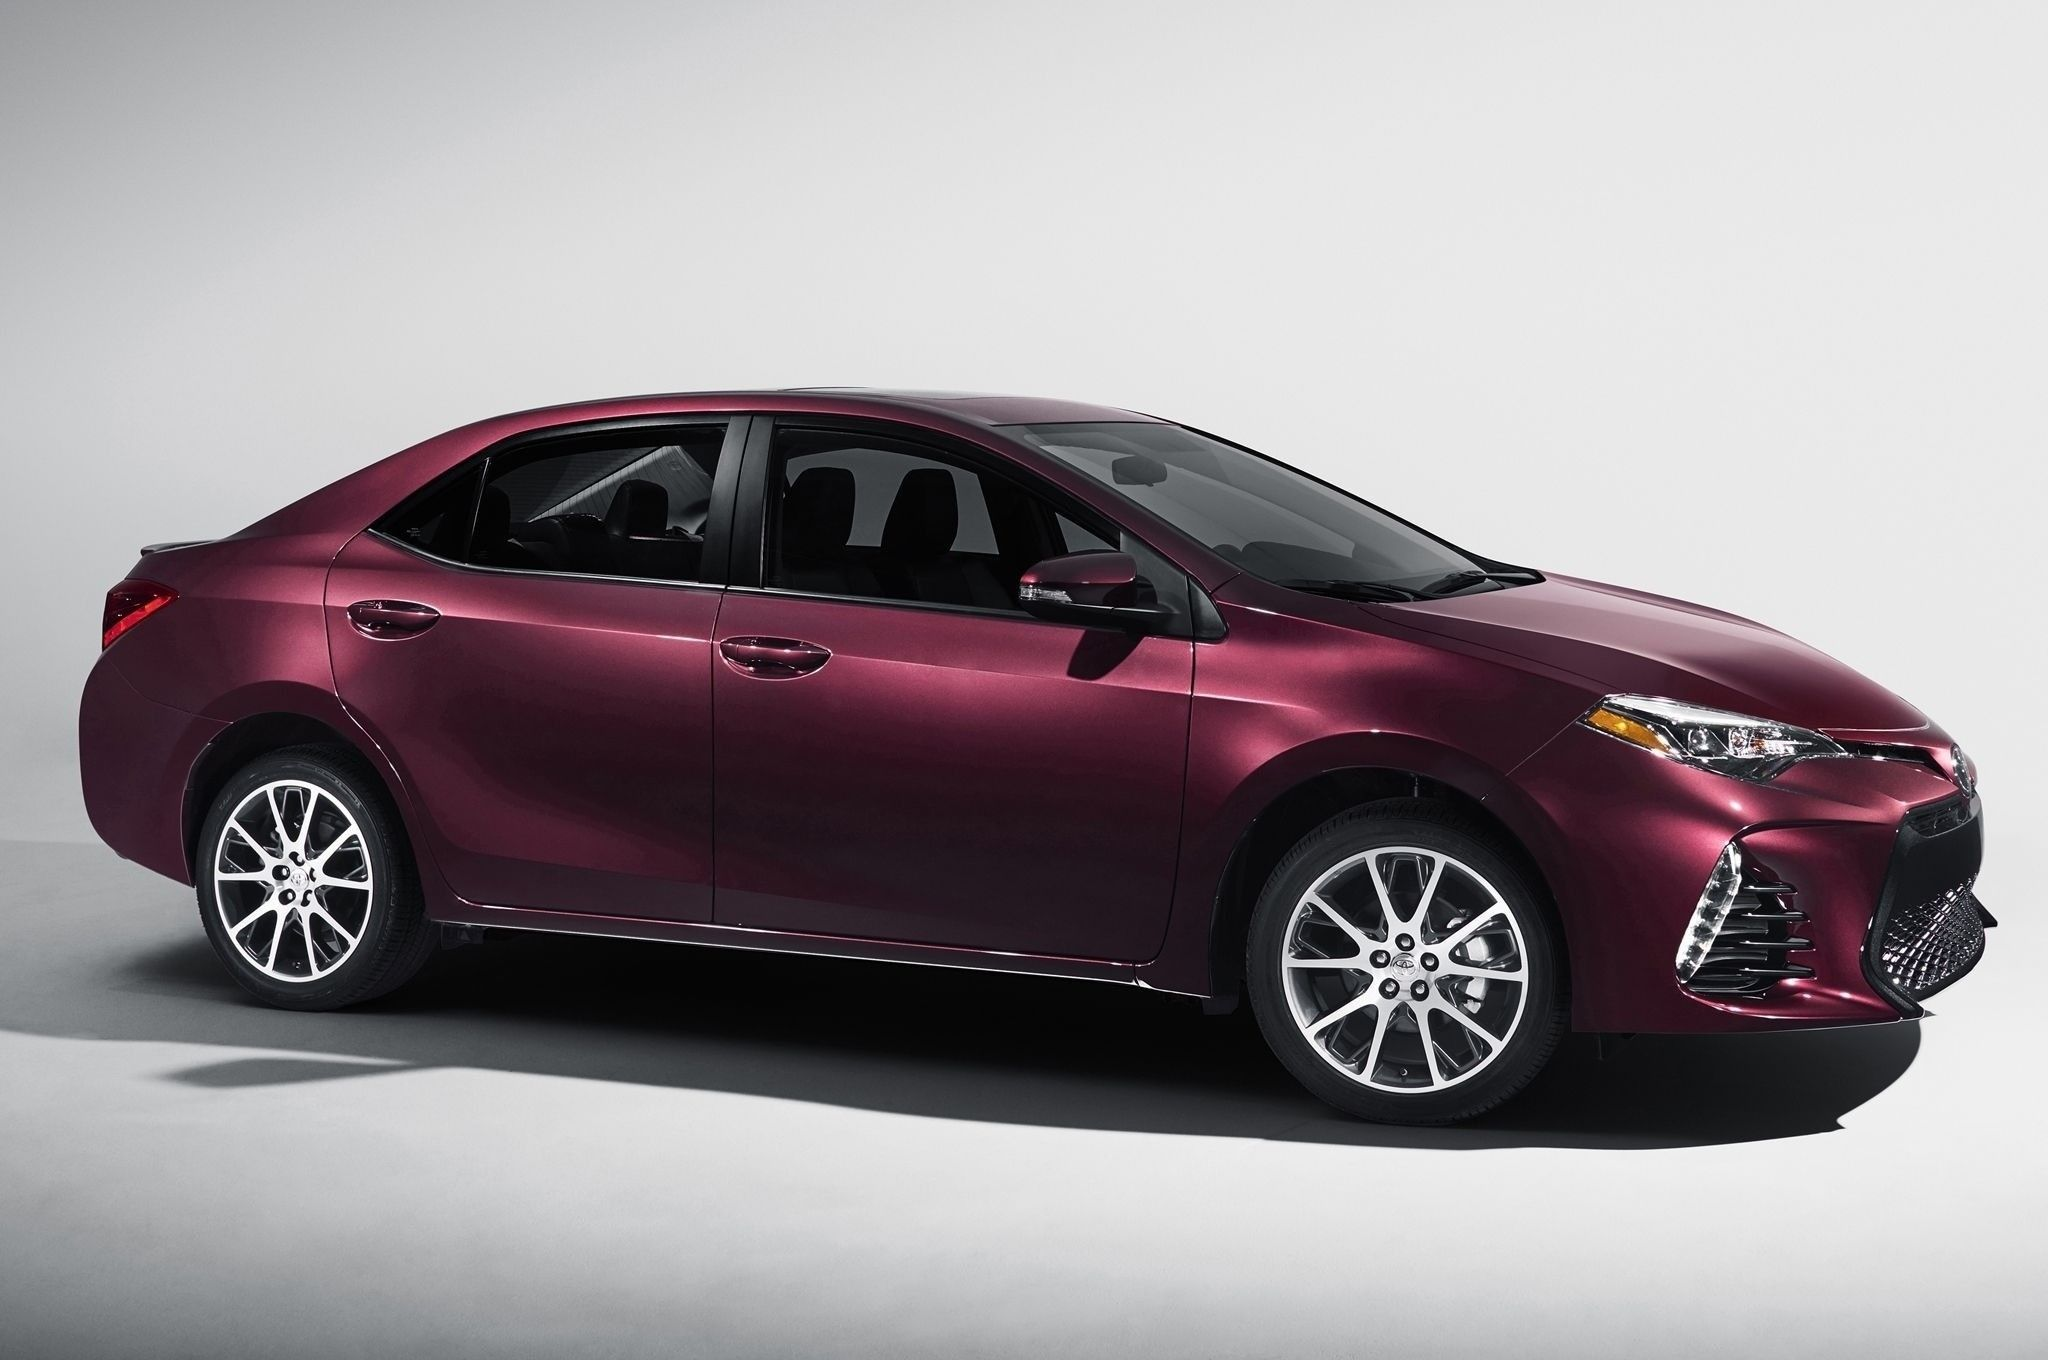 2019 Corolla Mpg First Drive Price Performance And Review